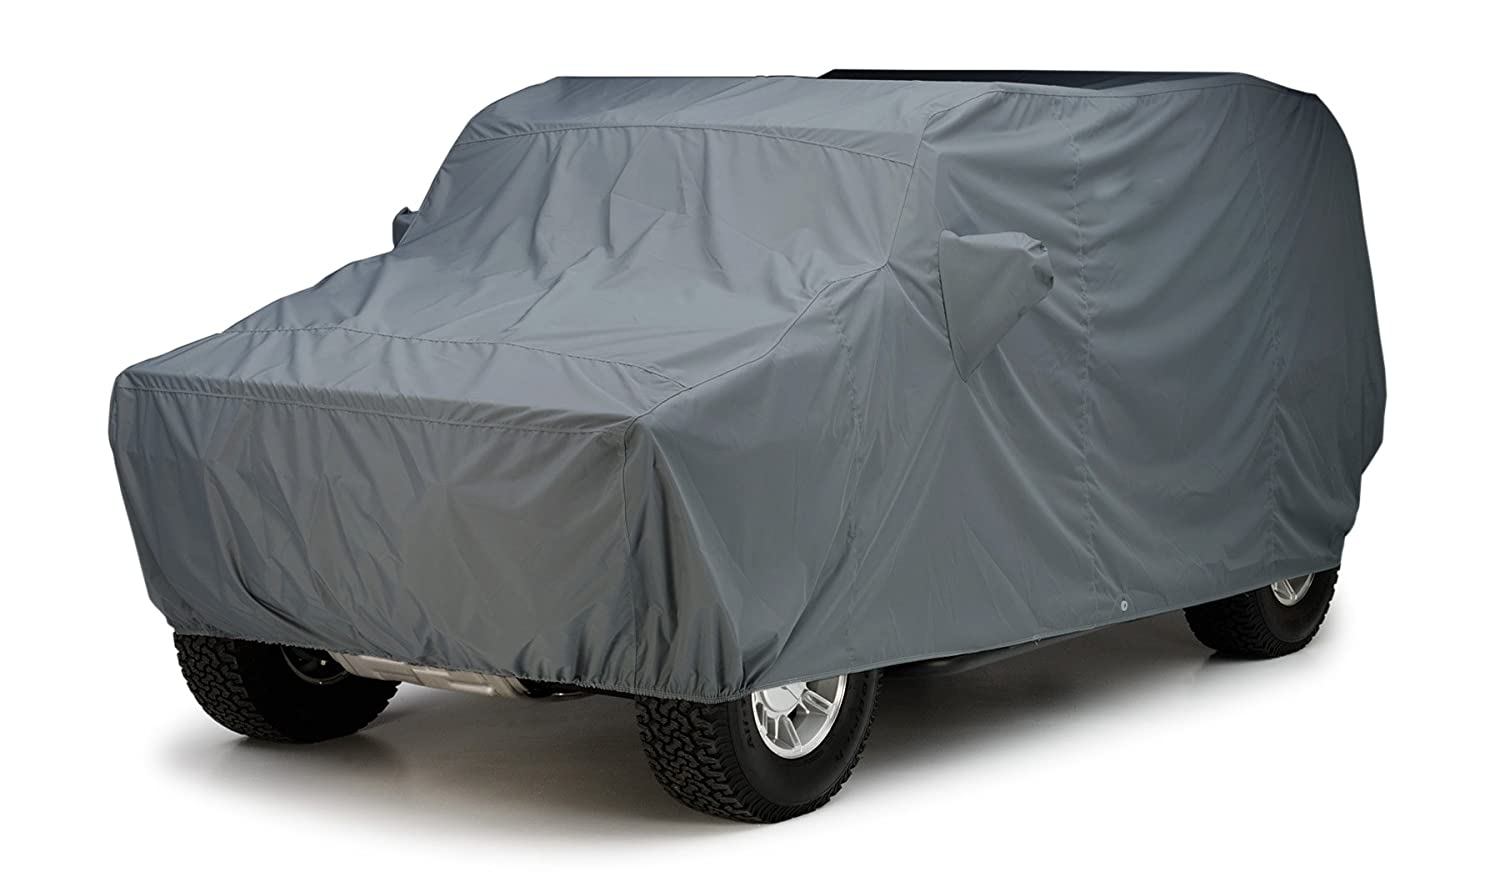 WeatherShield HP Fabric, Yellow Covercraft Custom Fit Car Cover for Land Rover Defender 90